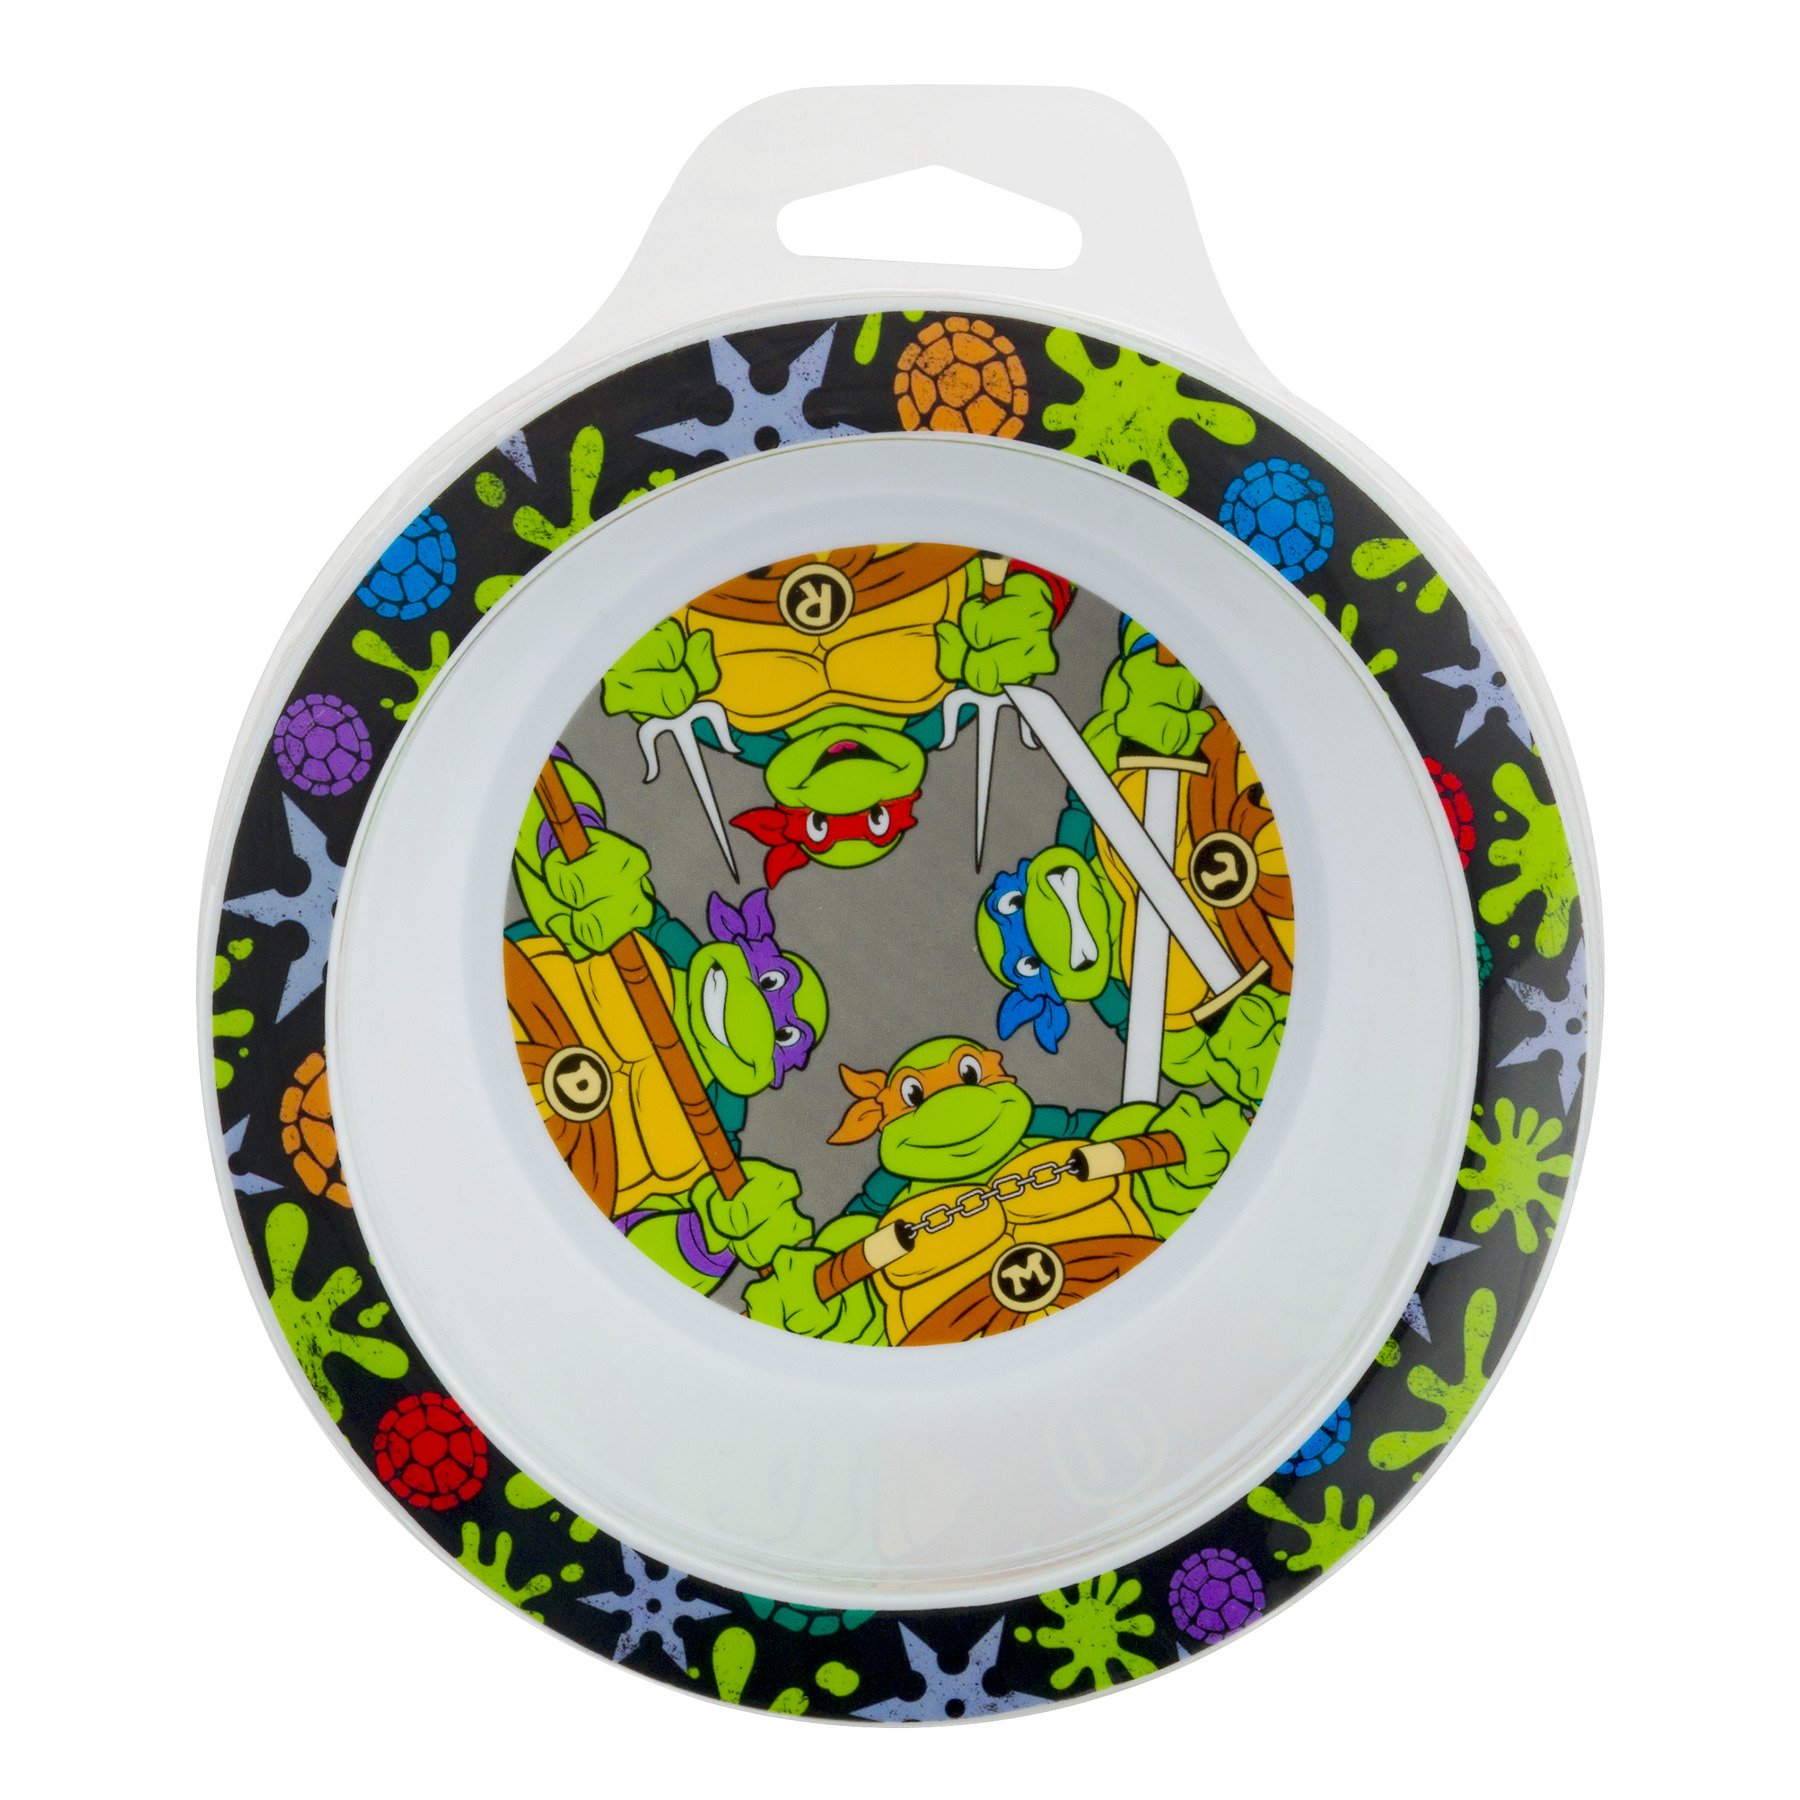 Gerber Graduates Teenage Mutant Ninja Turtles Bowl  - 1 CT1.0 CT